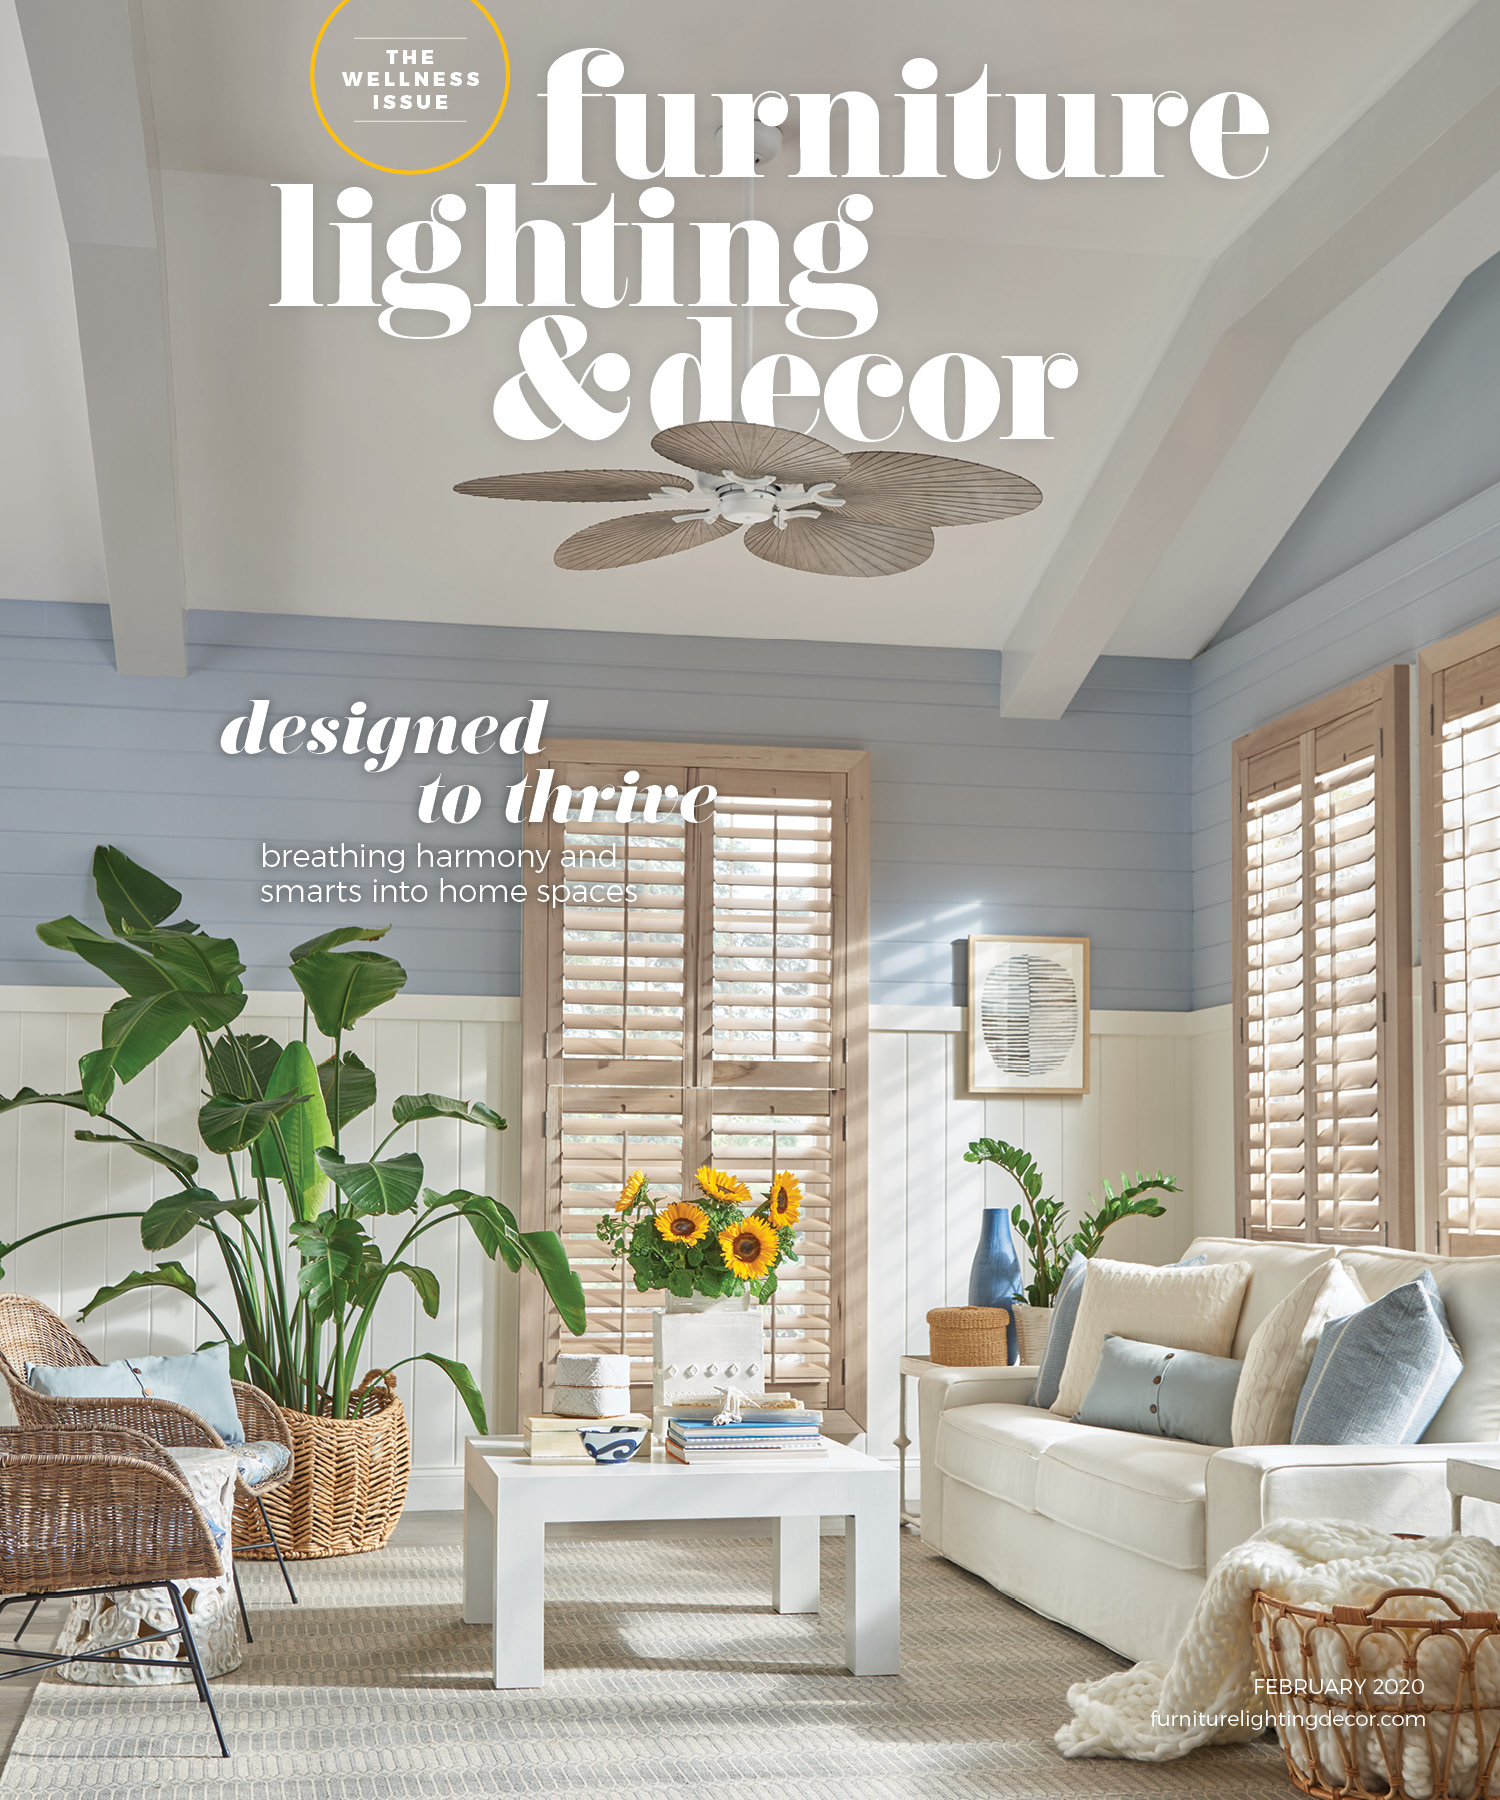 Furniture Lighting & Decor February 2020